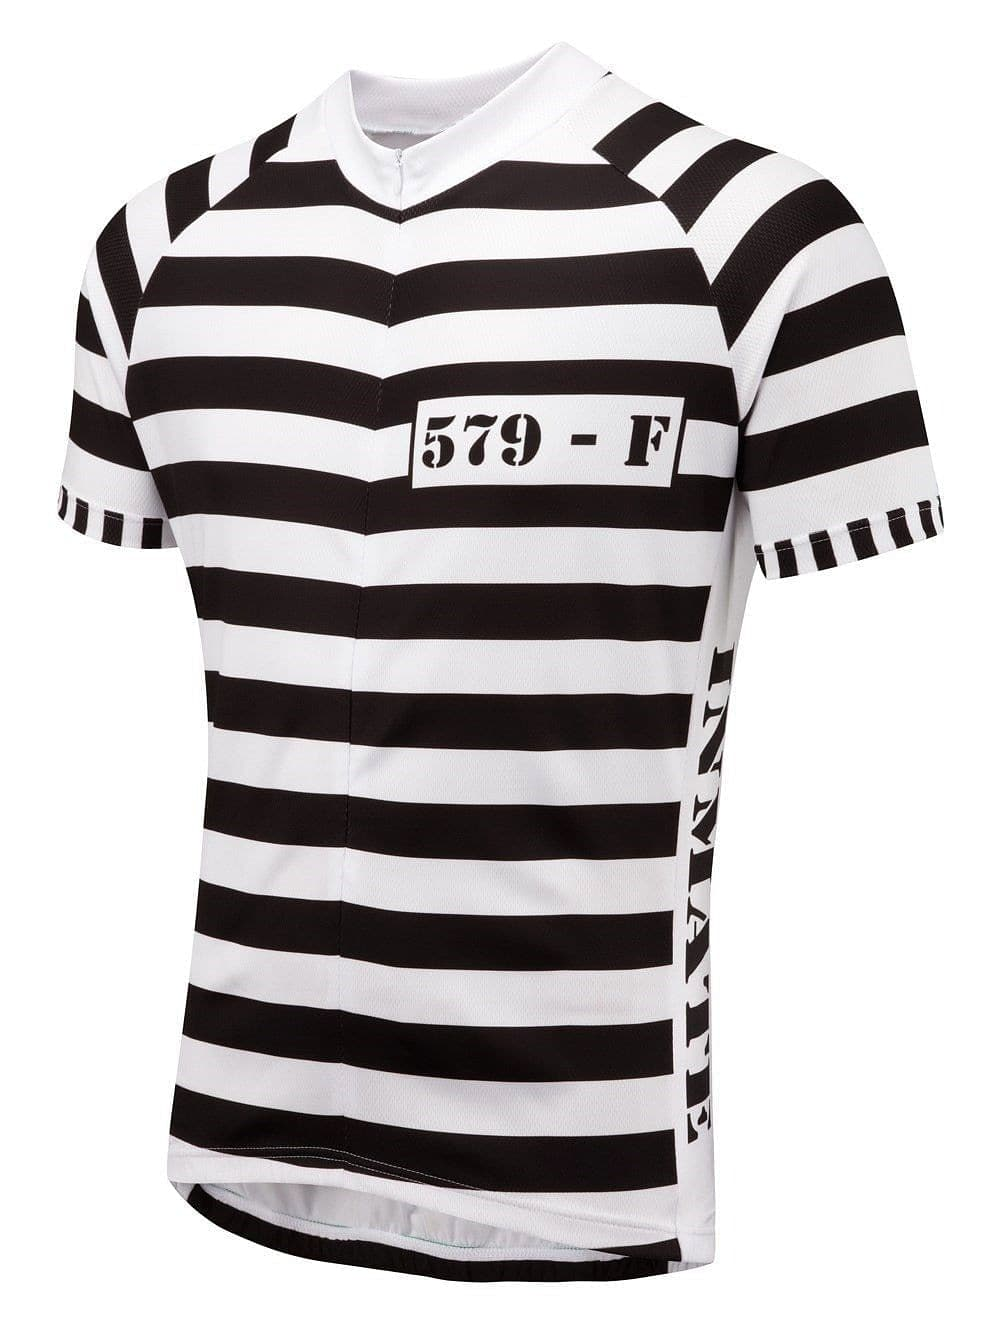 Convict Cycling Jersey - Granny Gear